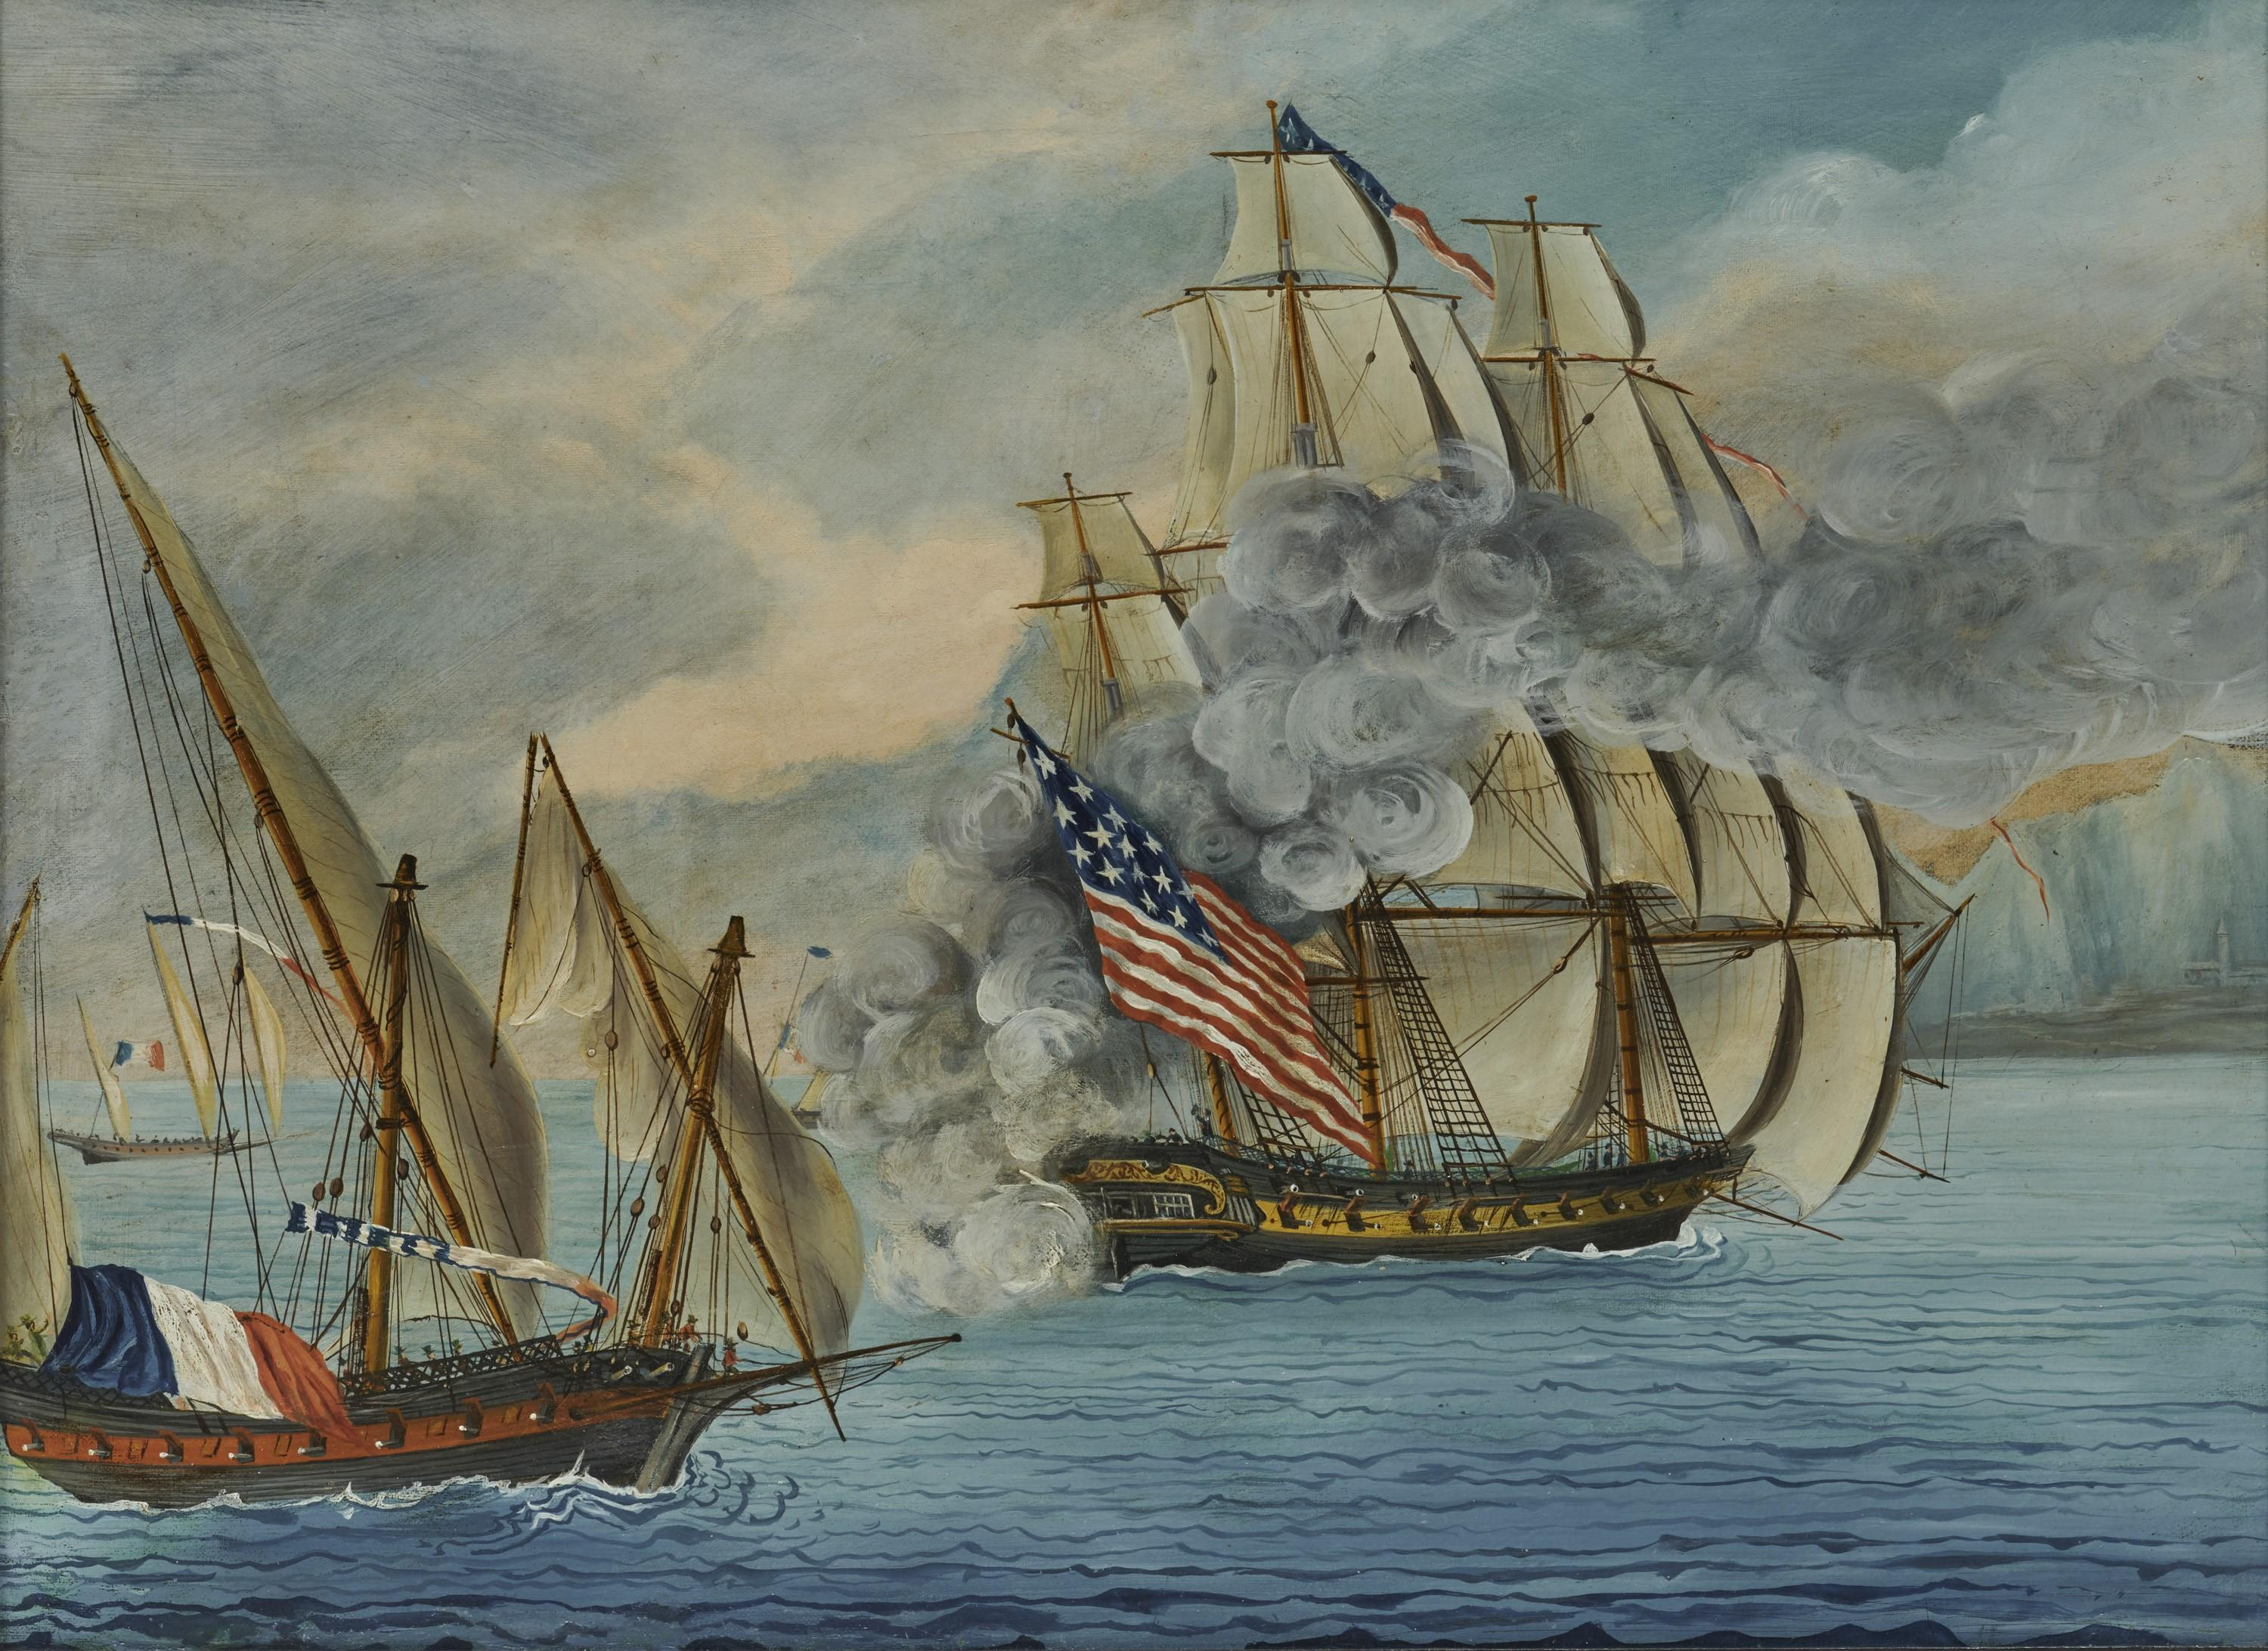 """Attributed to MICHELE FELICE CORNE, The Ship """"Mount Vernon"""" of Salem Engaging French Privateers, 1799, tempera on canvas, 18 x 24 in., frame: 21 3/4 x 27 1/2 in."""